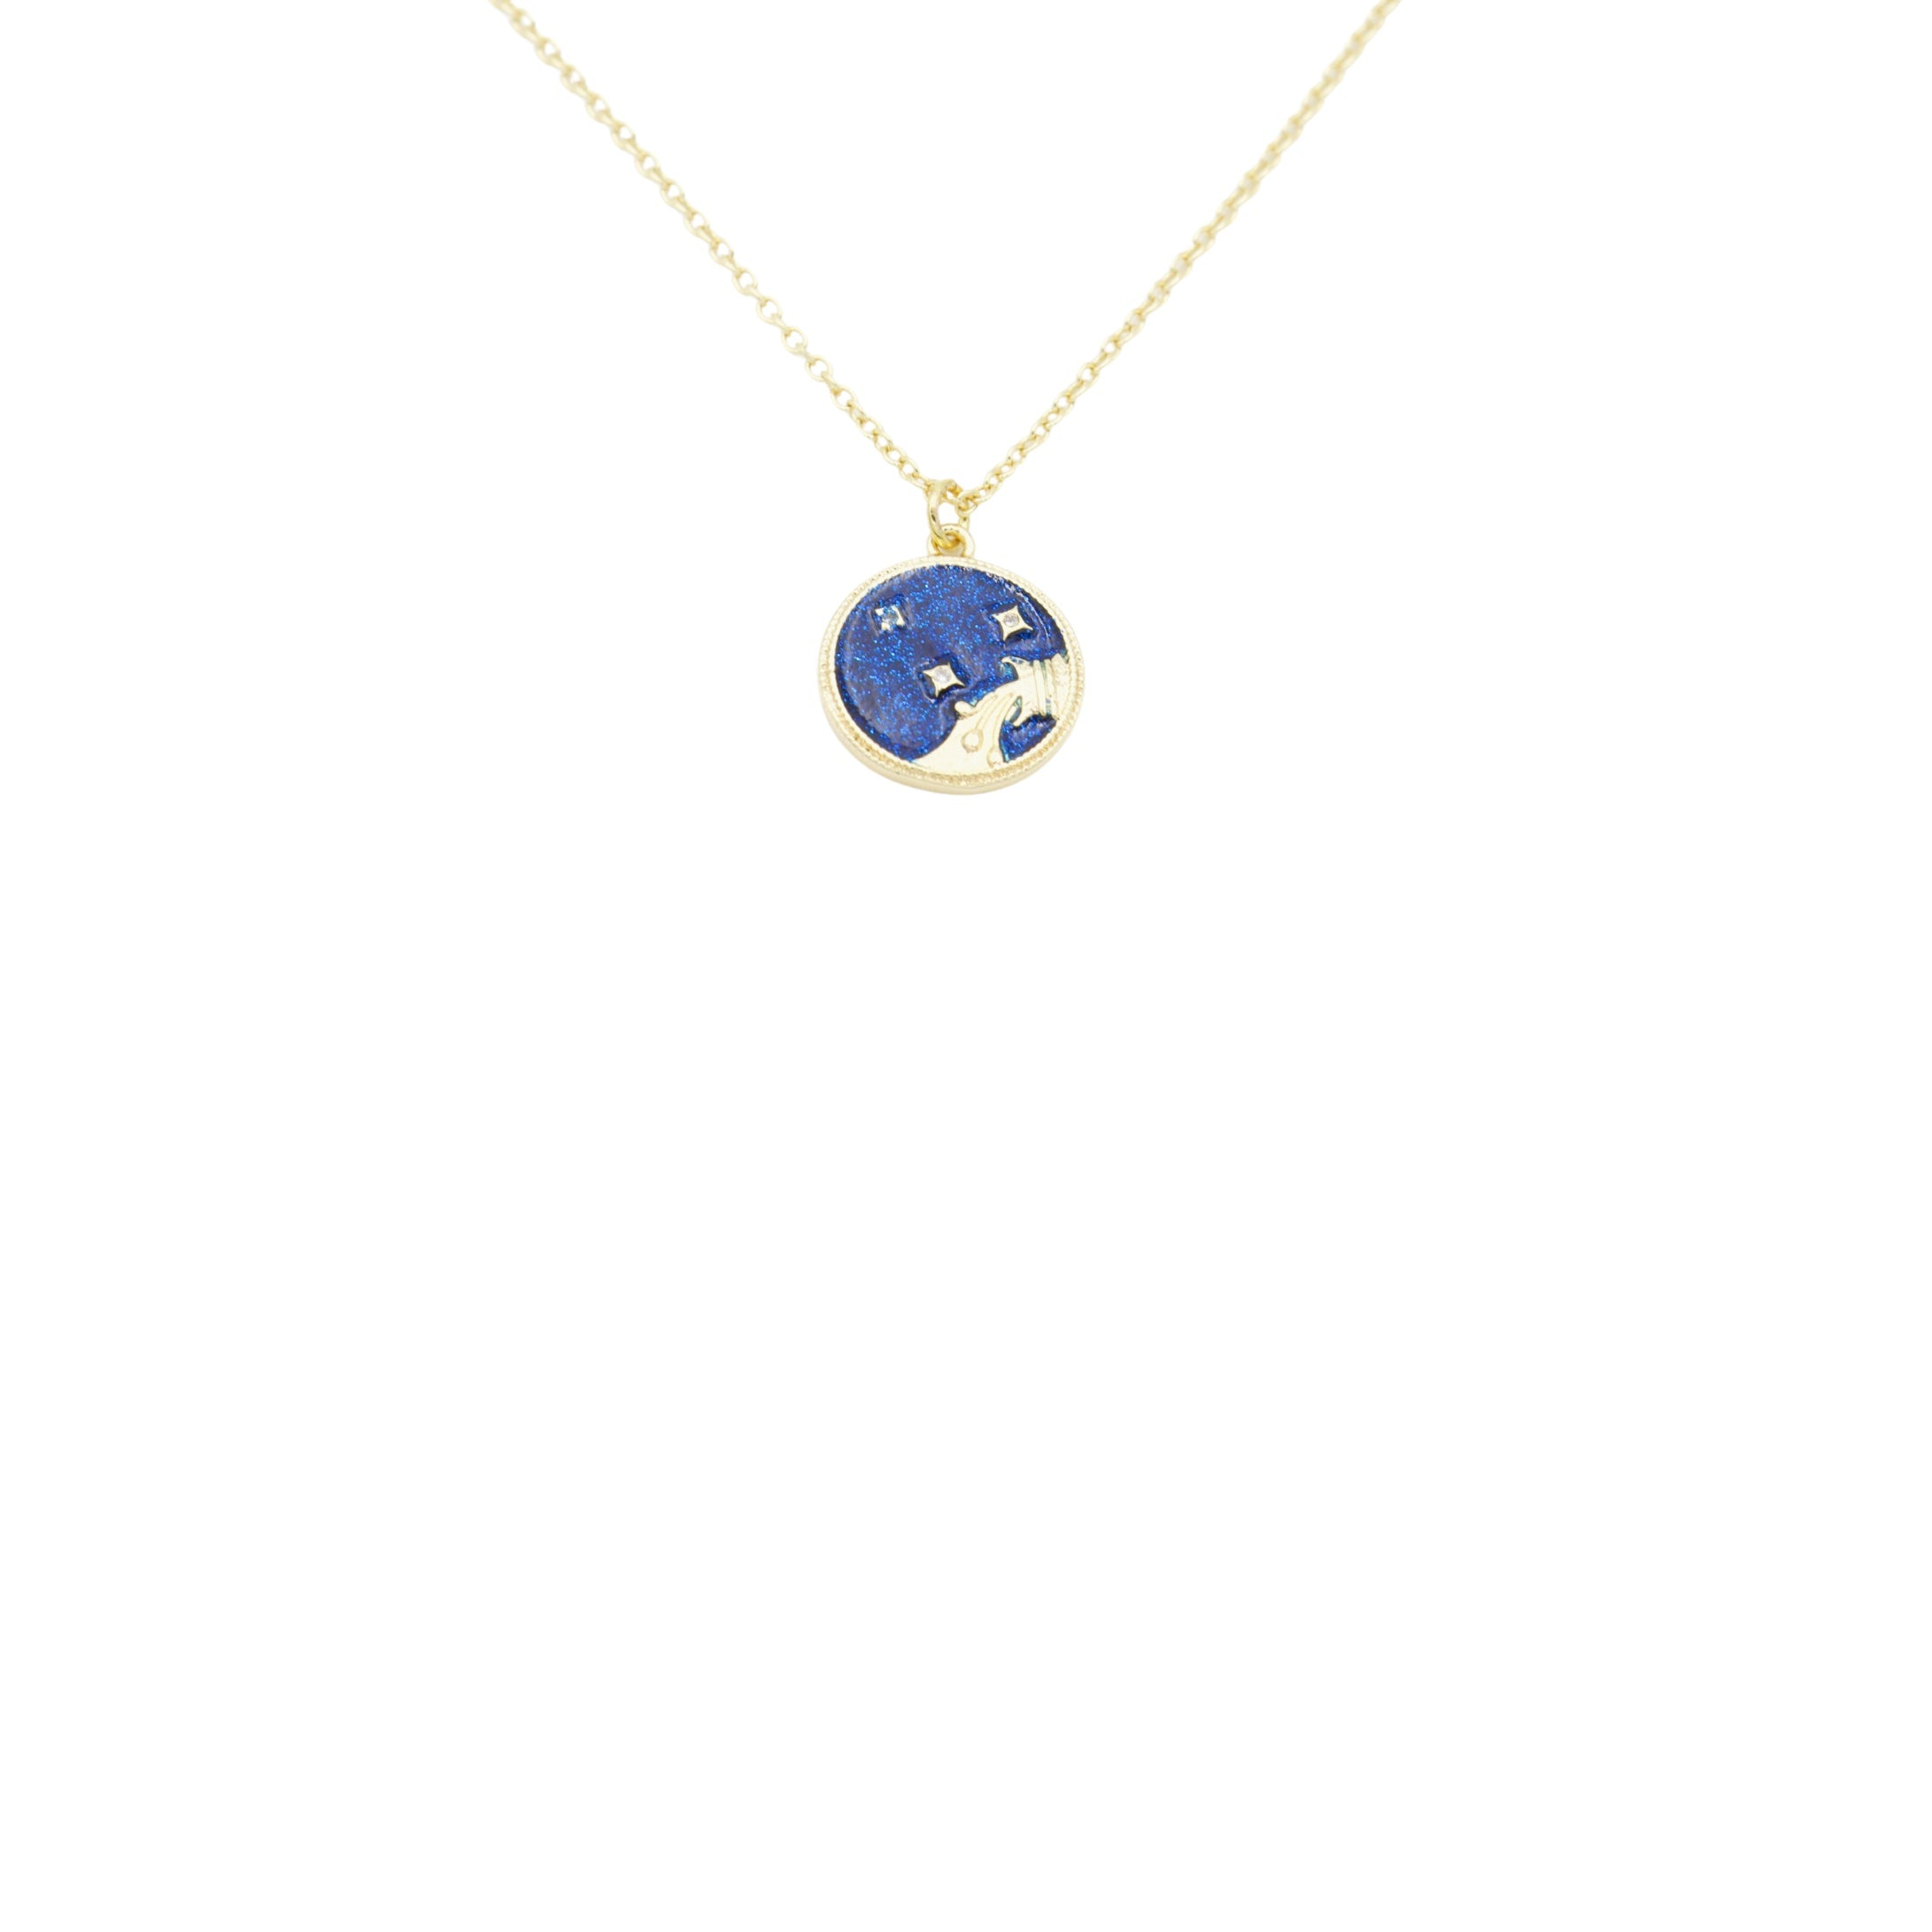 AW Boutique's Zodiac Astro Coin is a dainty pendant full of sparkle and shine.  This piece adds a pop of colour to your everyday wear and at 18 inches is a great length to mix and layer your other chains with.  Proudly wear either your own star sign or the star sign of a loved one close to your heart.  Zodiac shown is Aquarius.